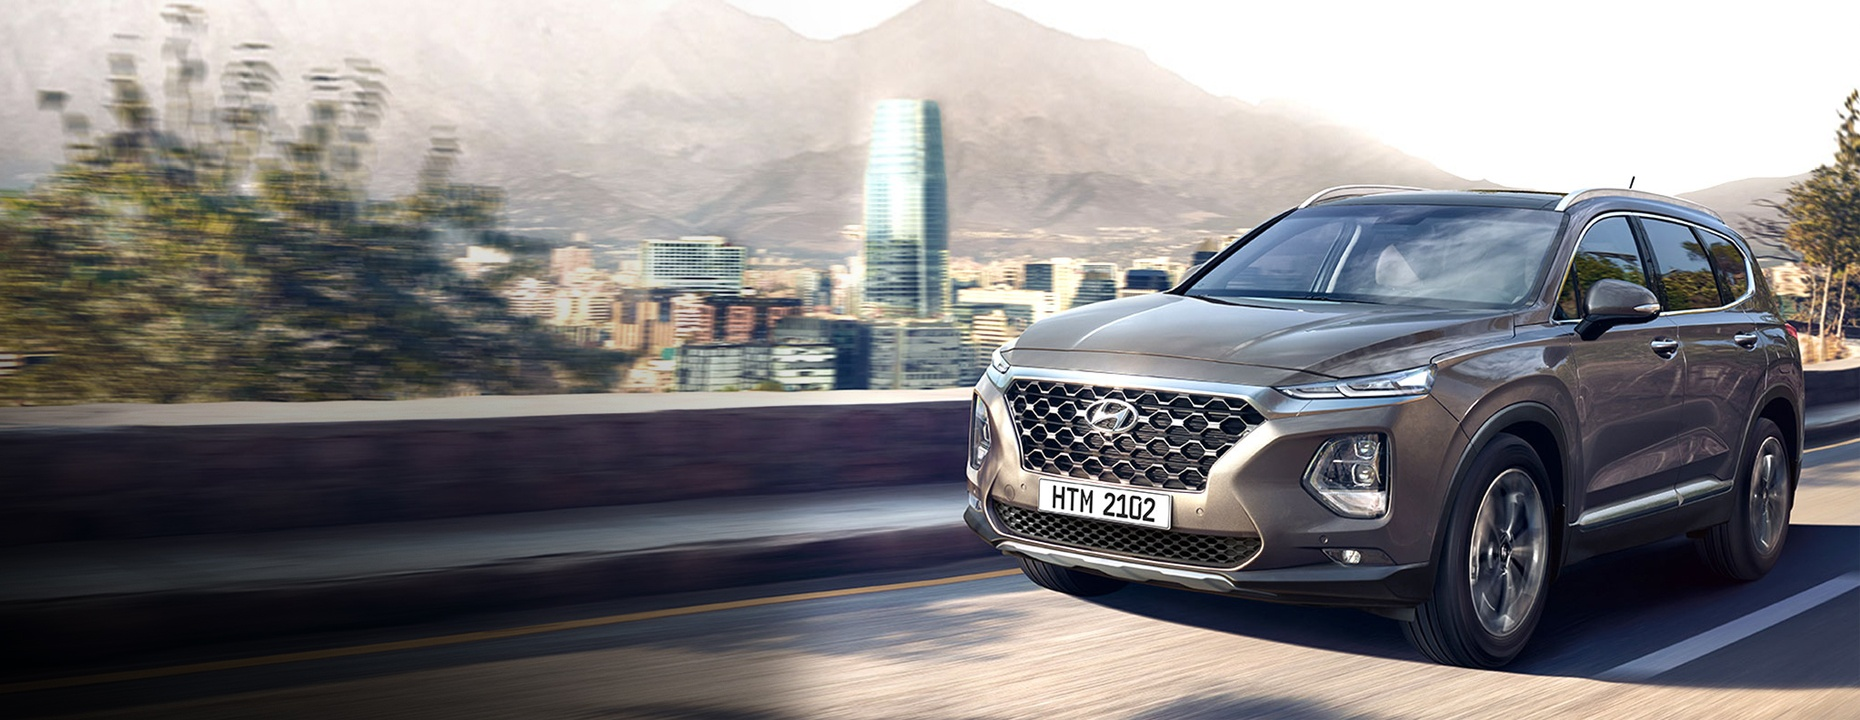 Hyundai suffering from dismal performance in India, China, US and Europe